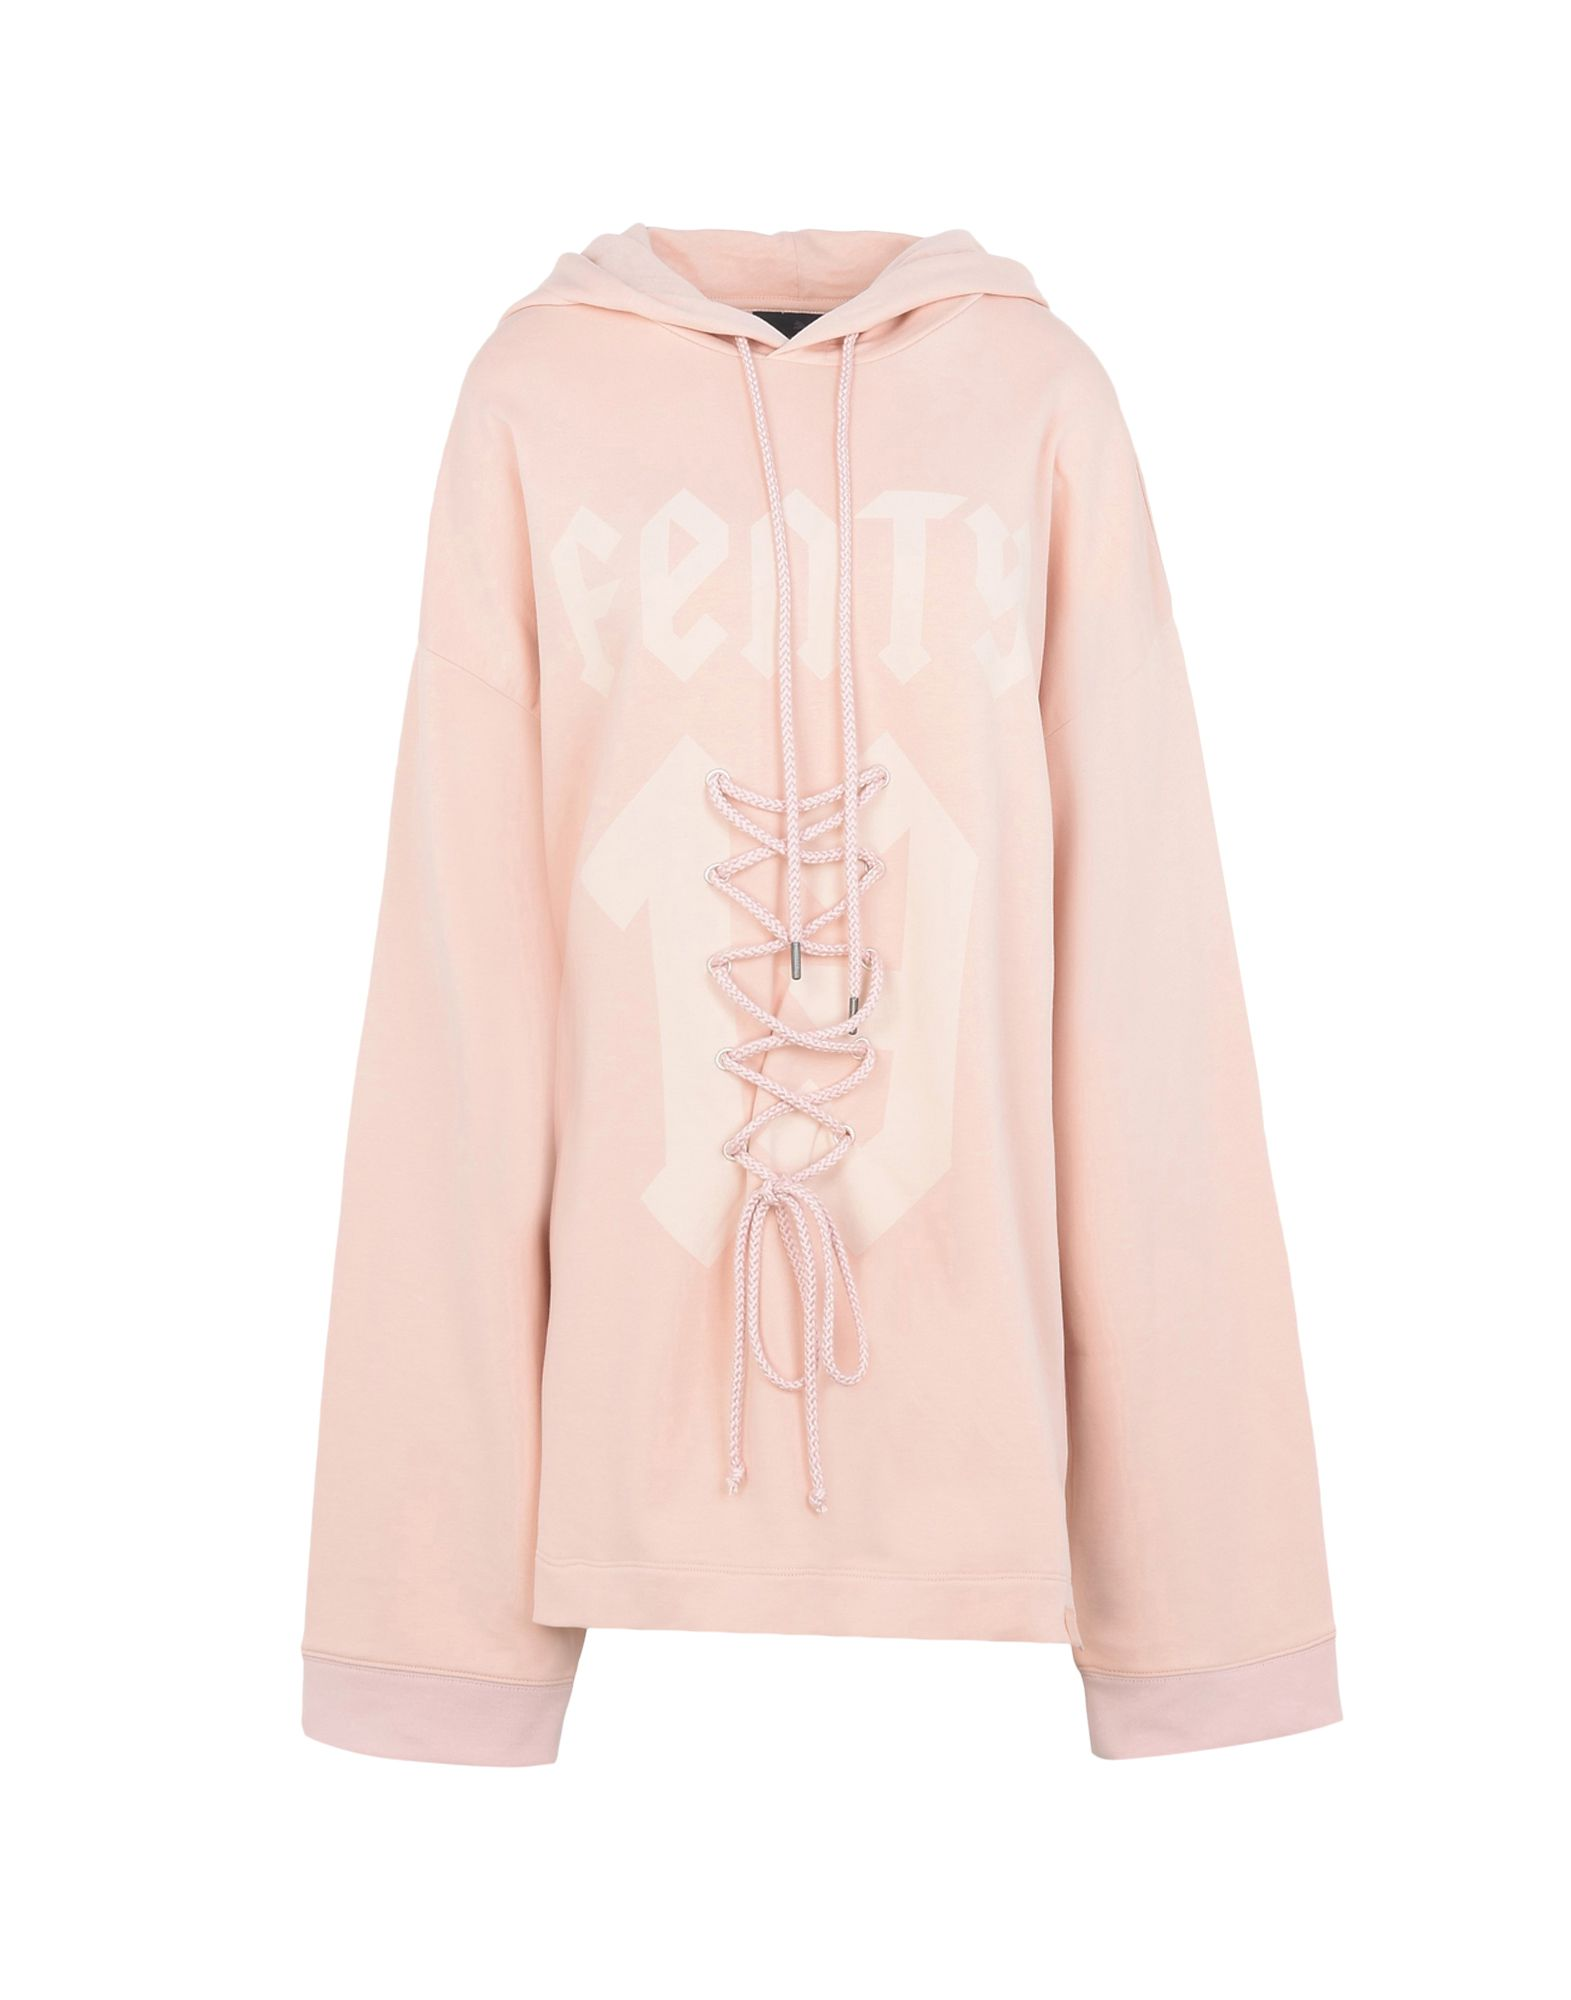 Felpa Fenty Puma By Rihanna Ls Graphic Frt Lacing Hoody - Donna - Acquista online su VtzL8dm3